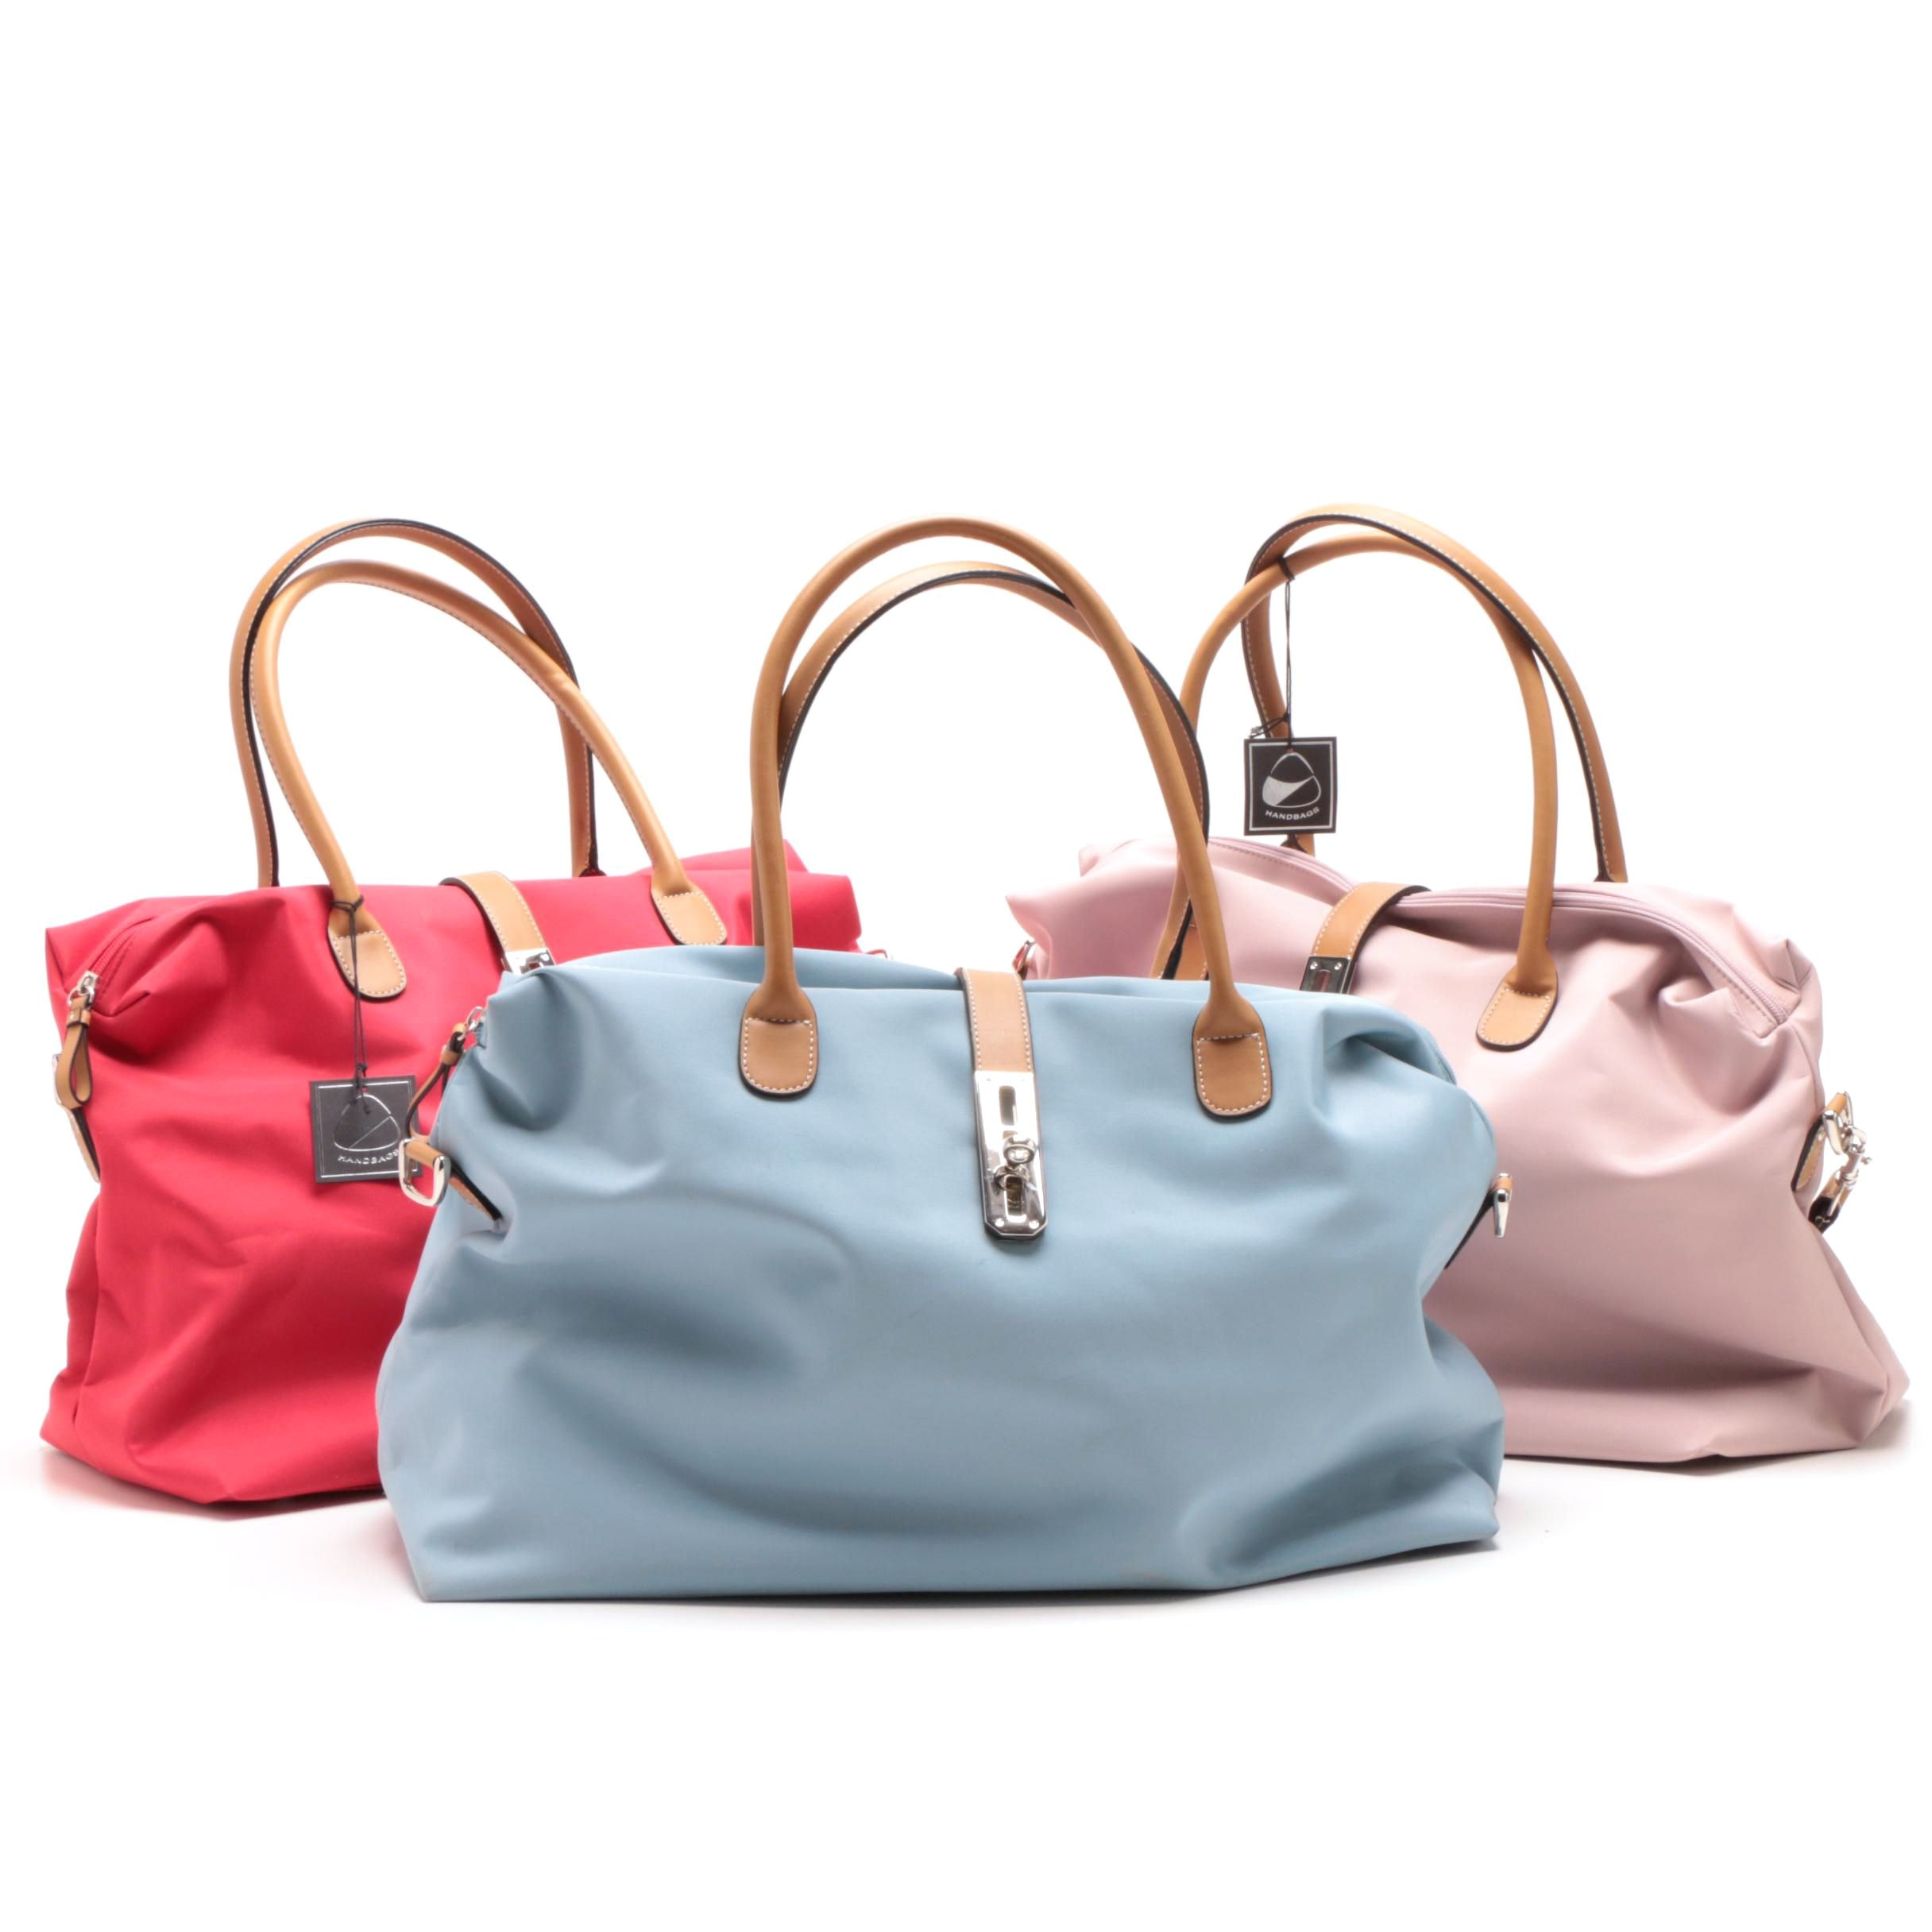 Red, Blue and Pink Nylon Tote Bags with Detachable Shoulder Straps